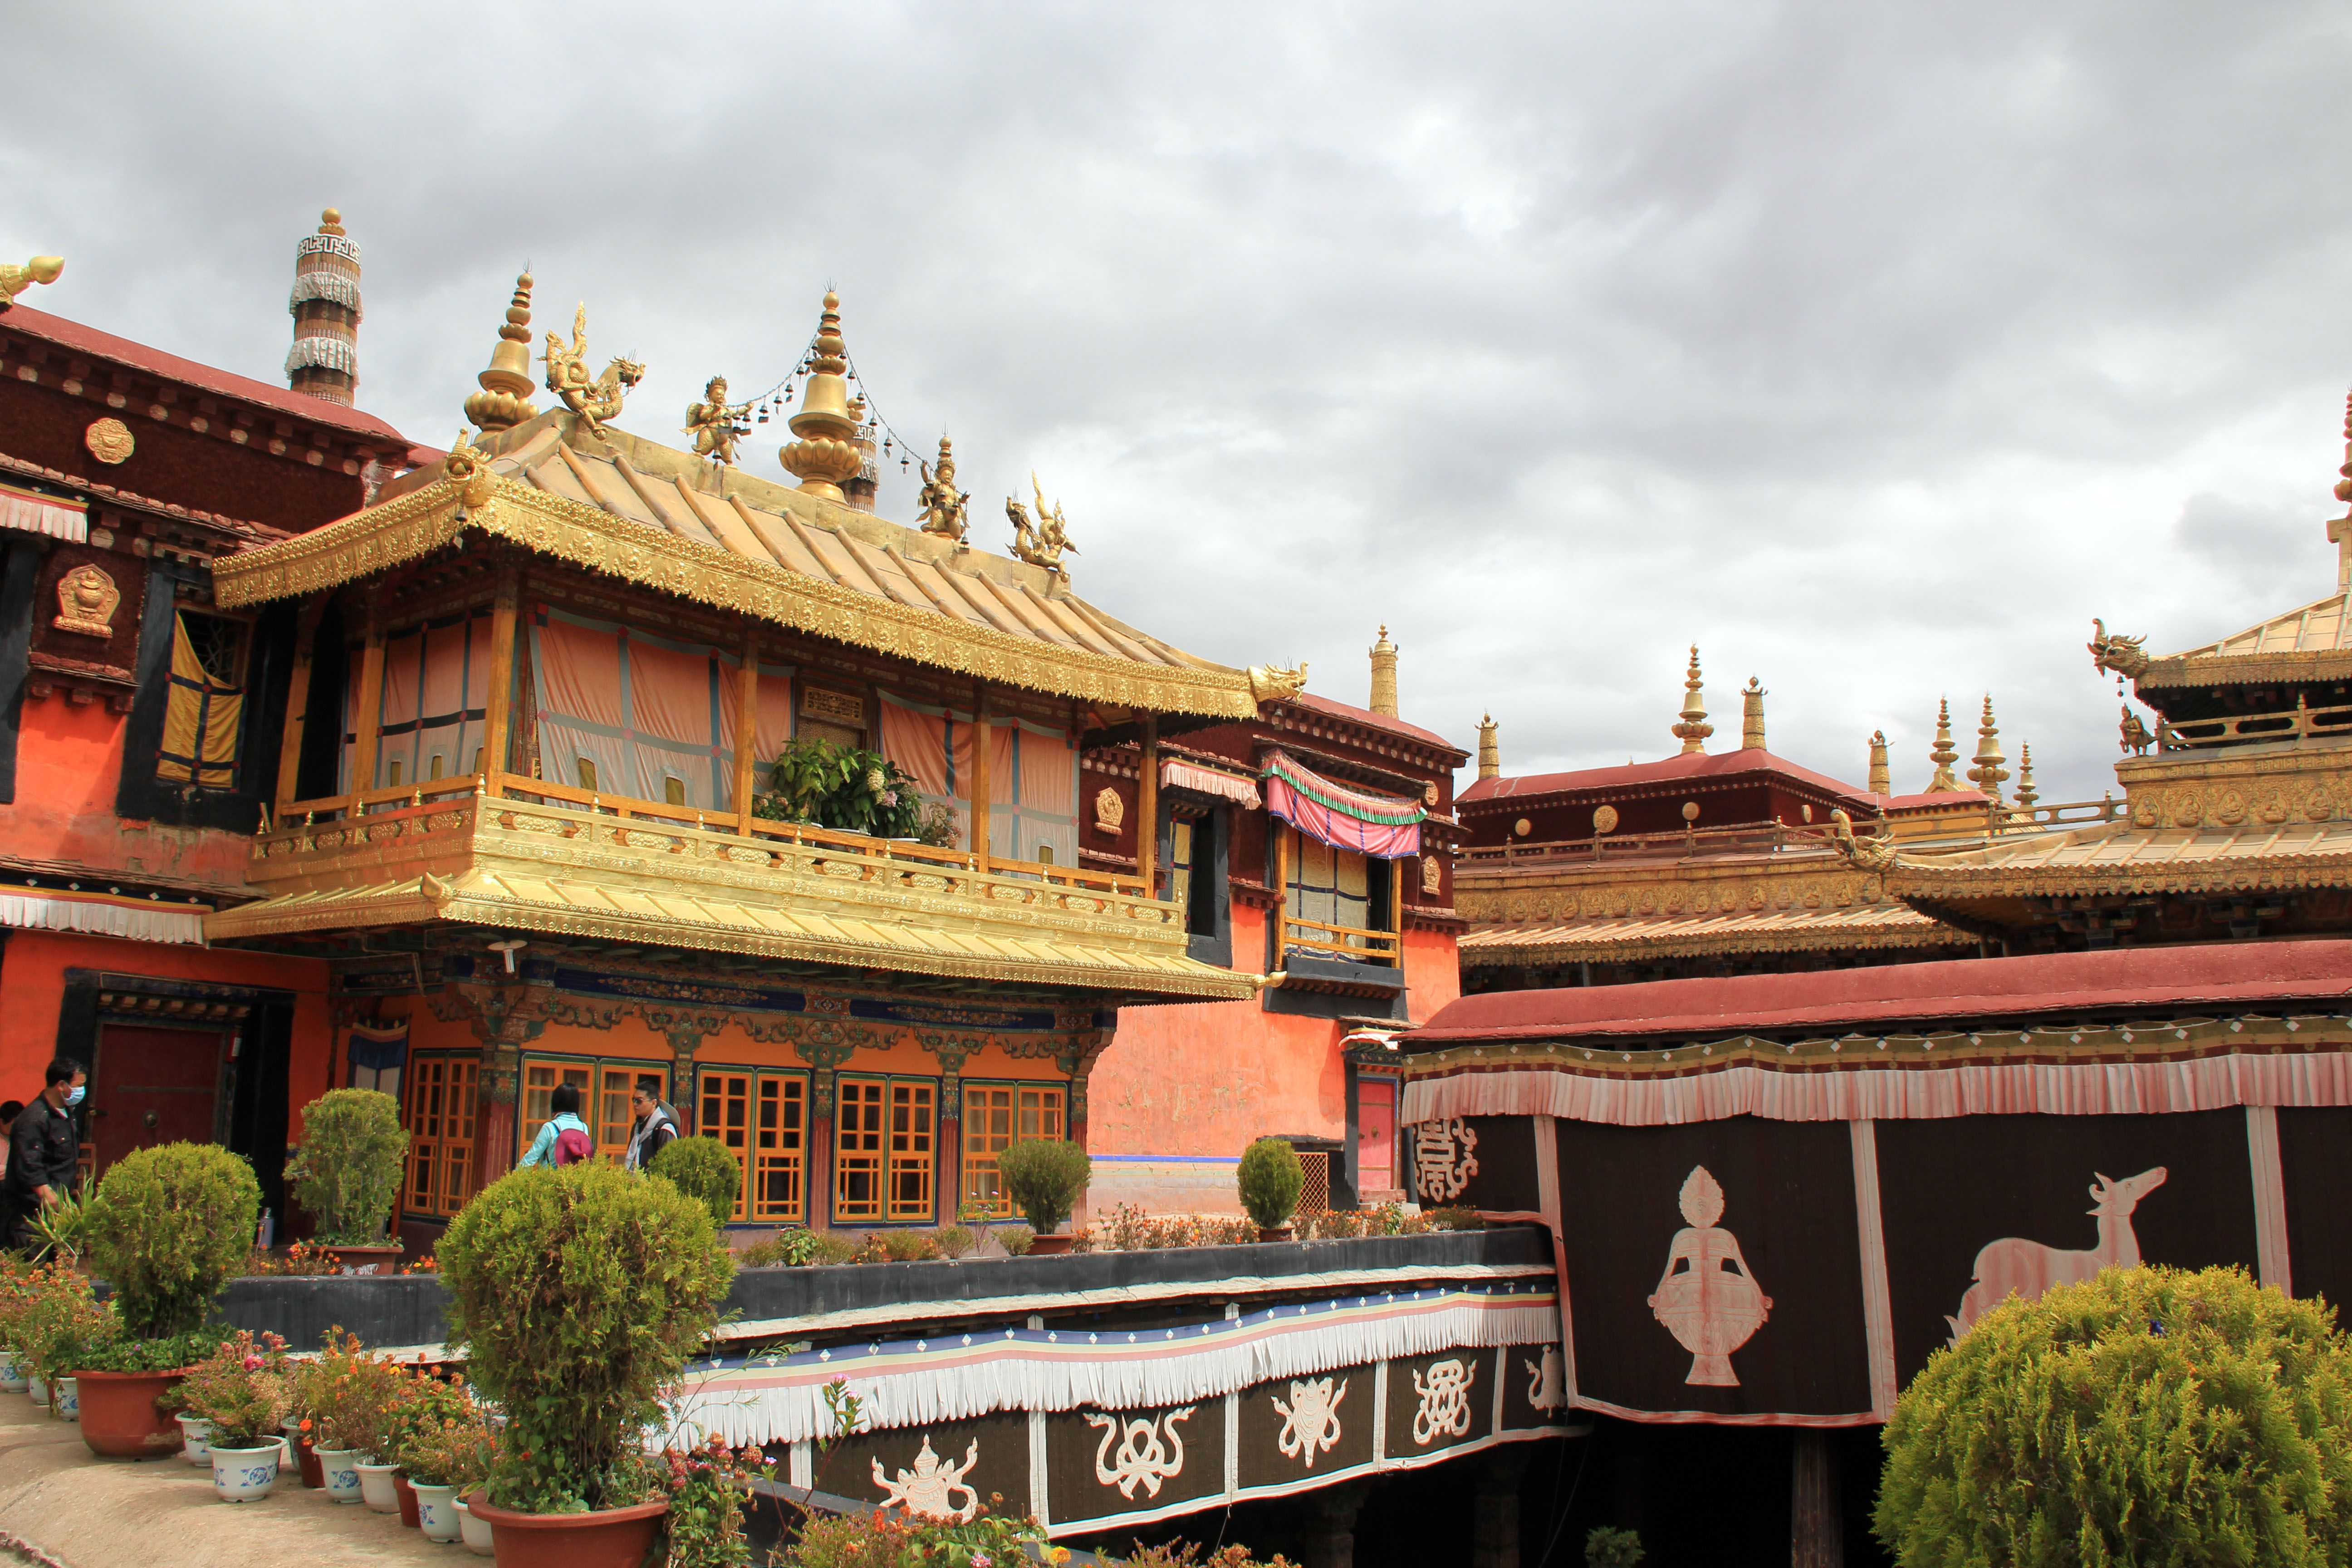 The Lhasa Jokhang Temple